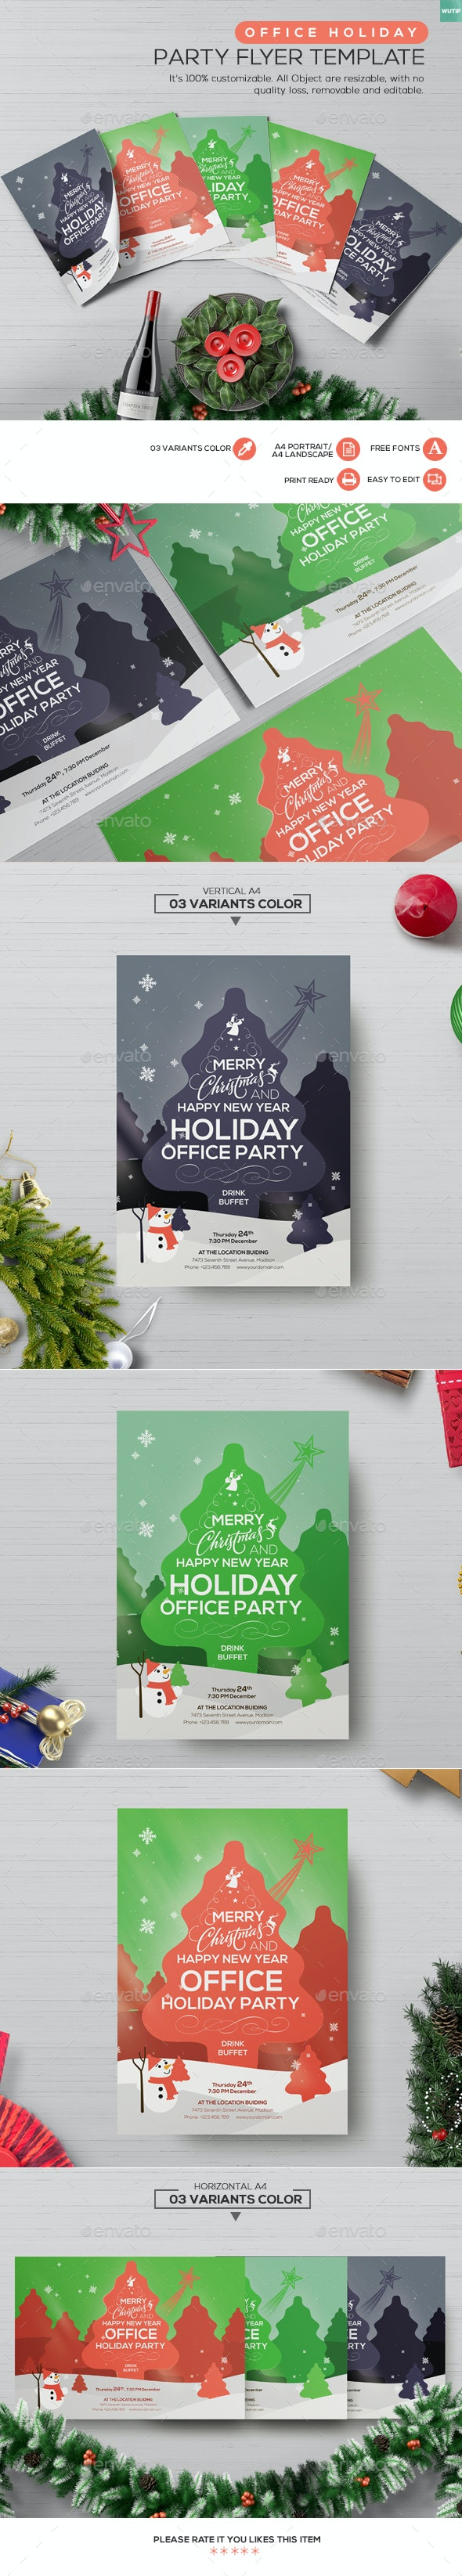 Office Holiday Party - Flyer Template - Holidays Events